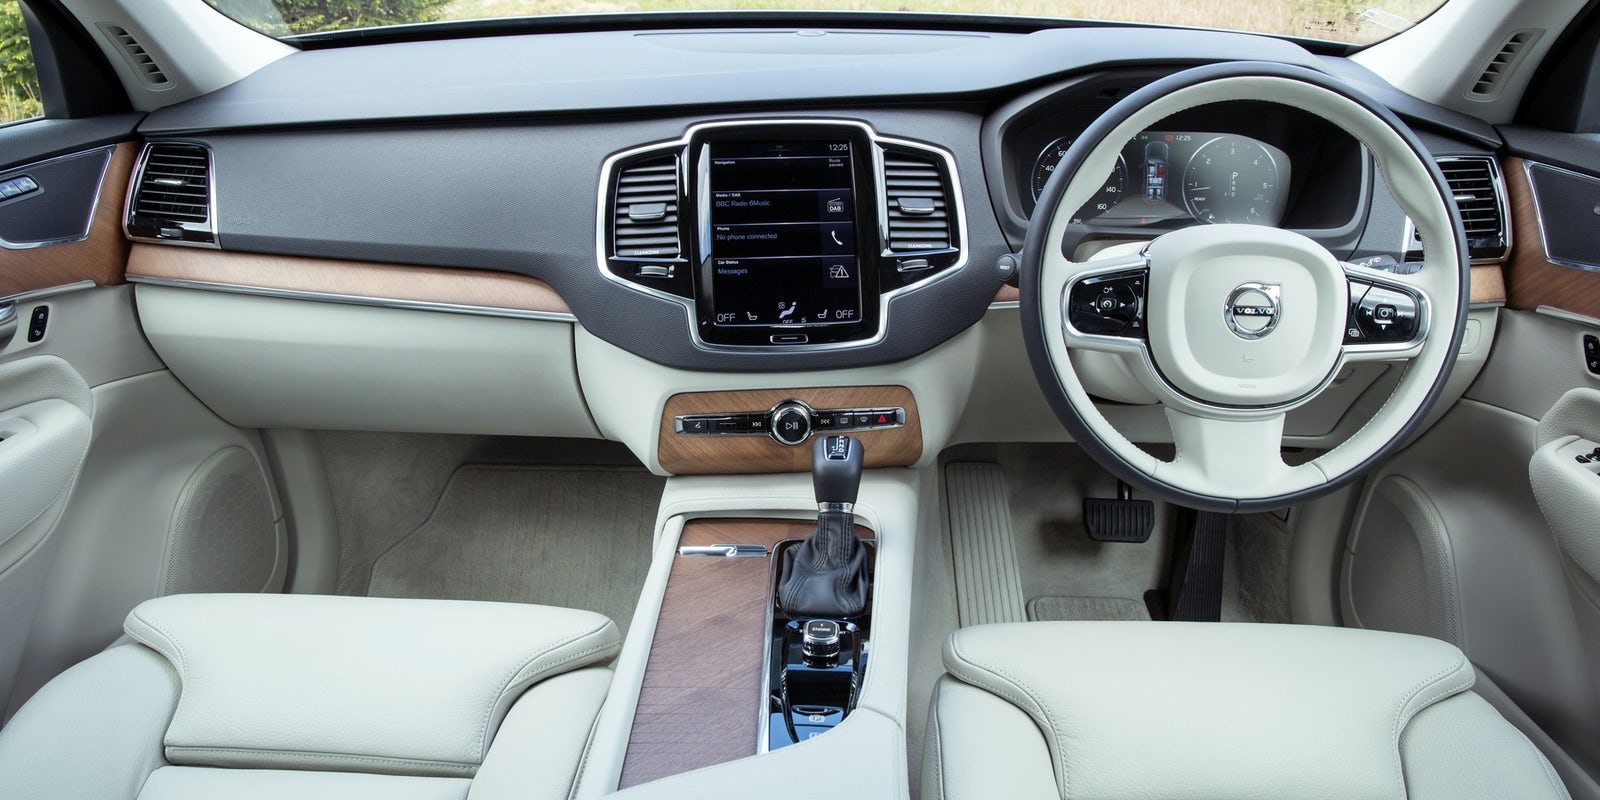 Volvo XC90 interior and infotainment | carwow